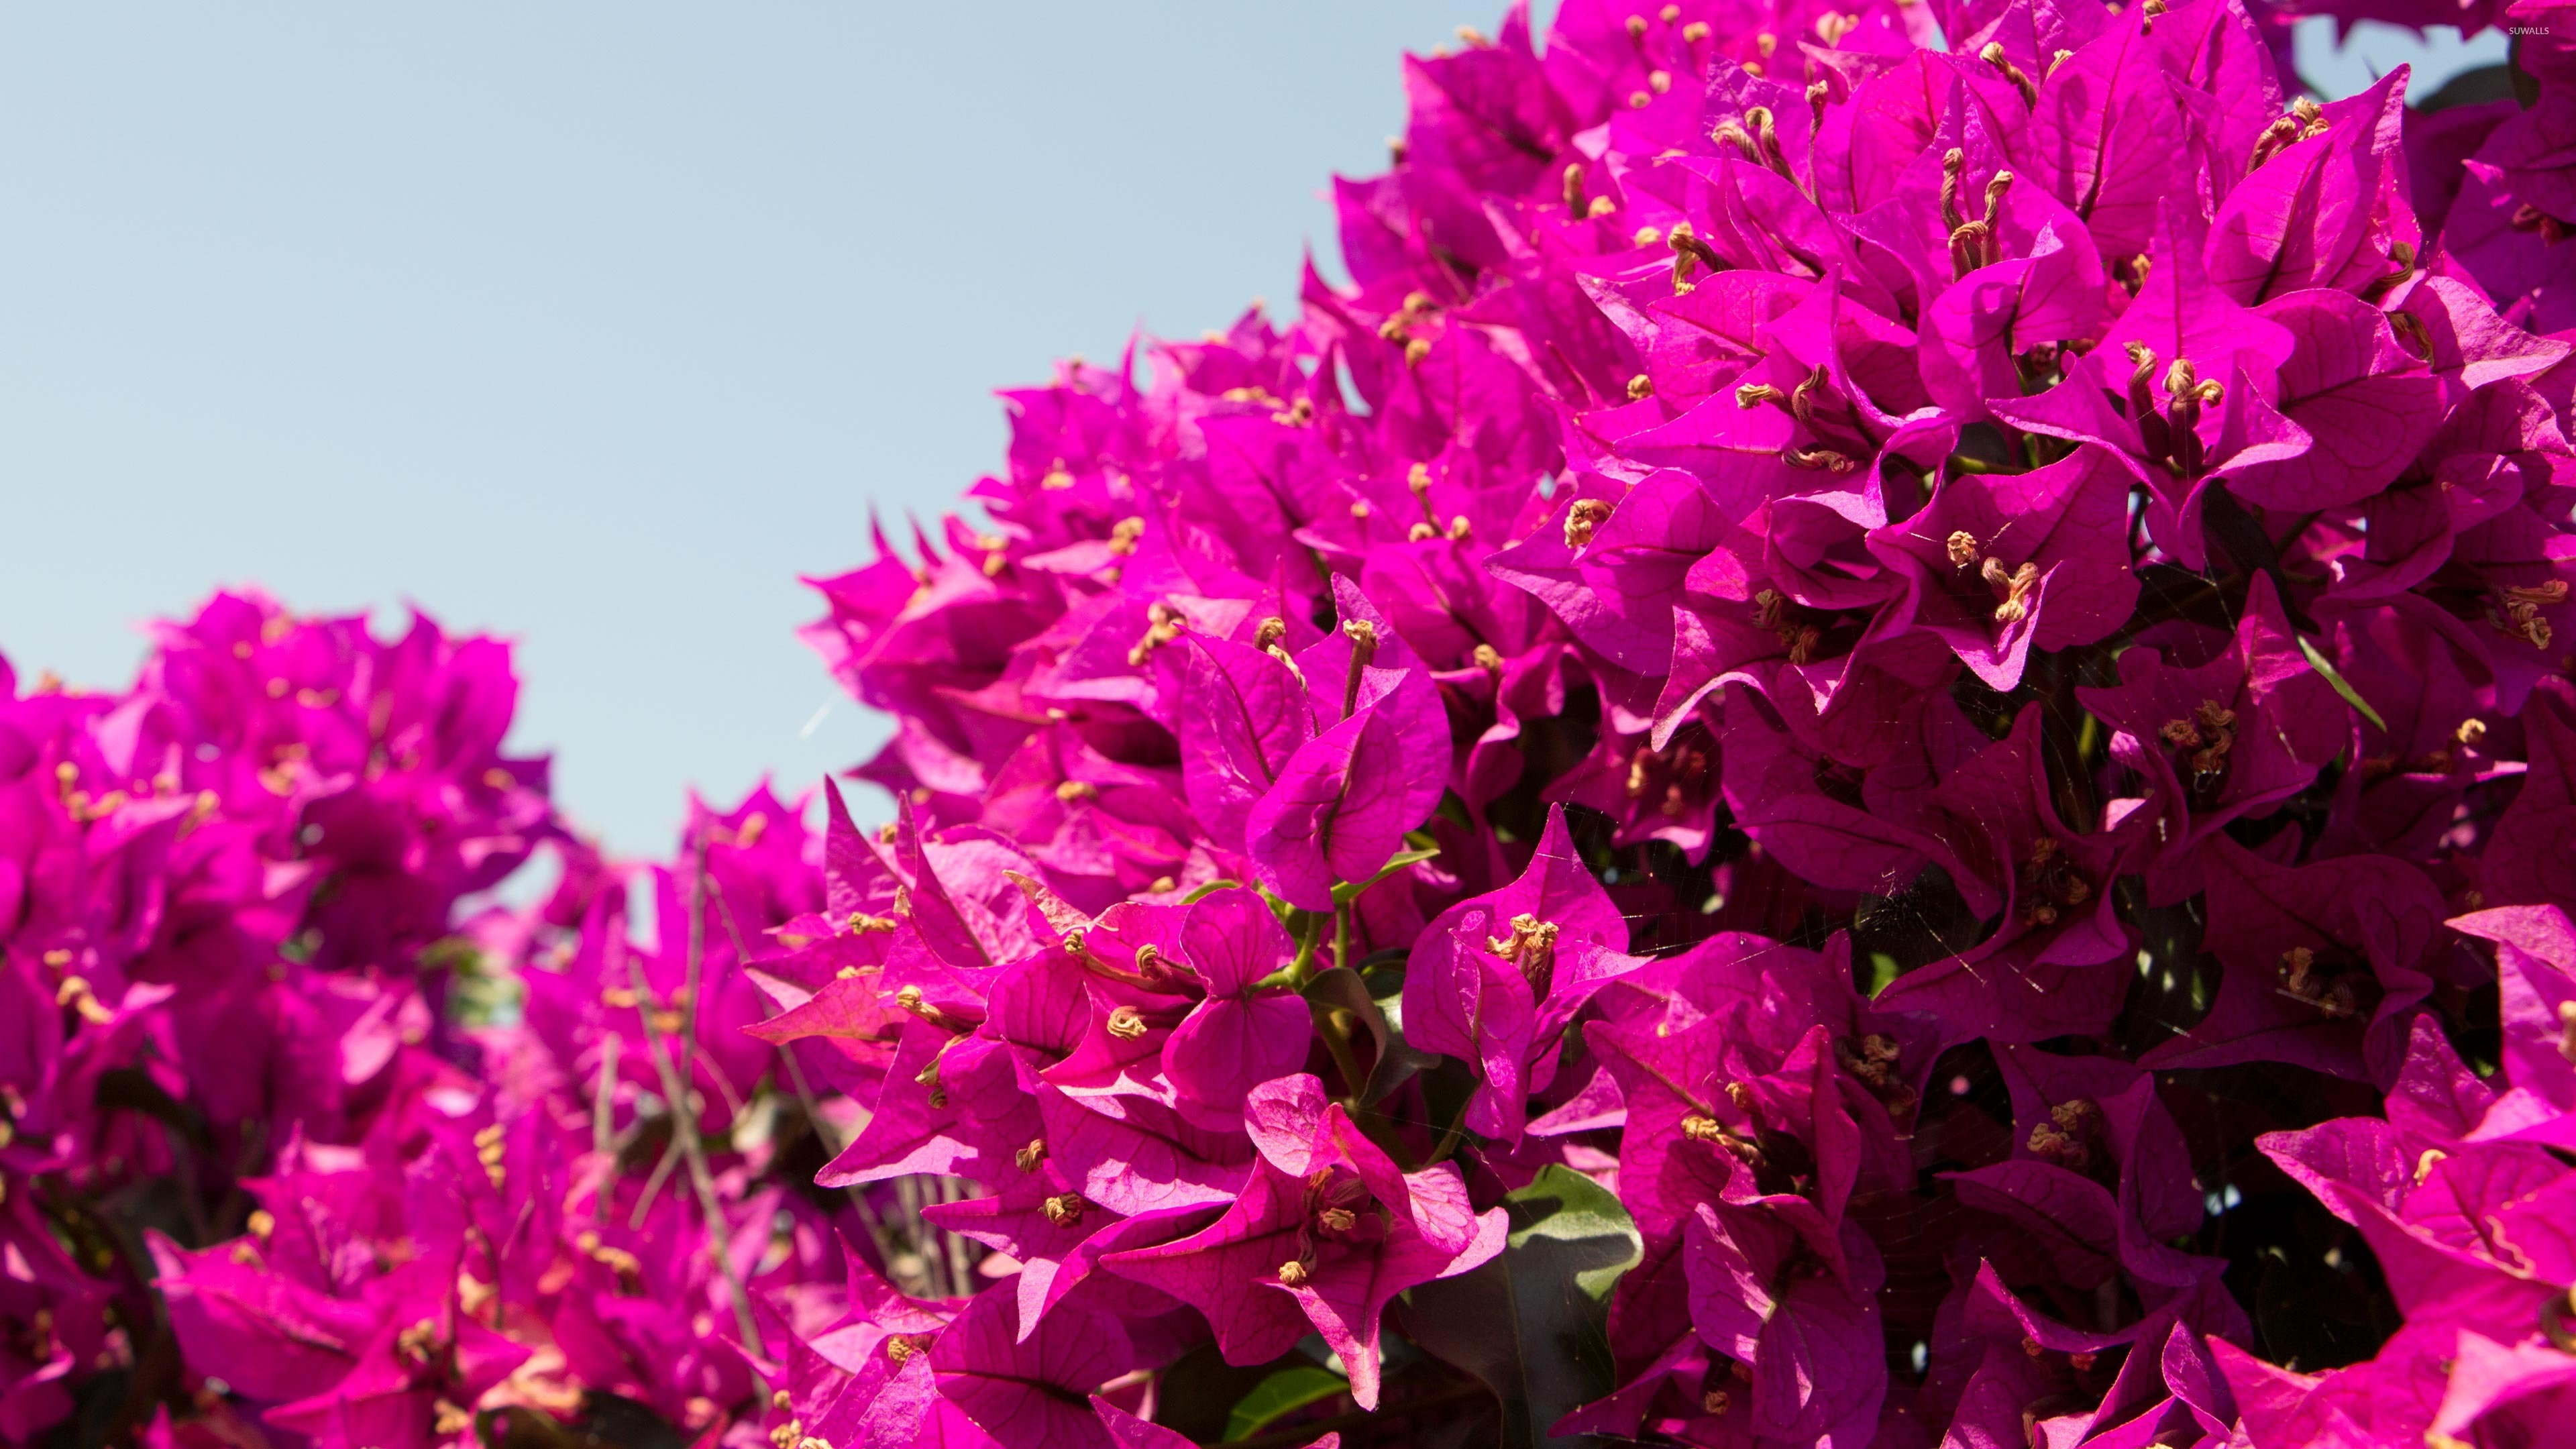 Bougainvillea Wallpaper Spiderweb In A Pink Bougainvillea Shrub Wallpaper Flower